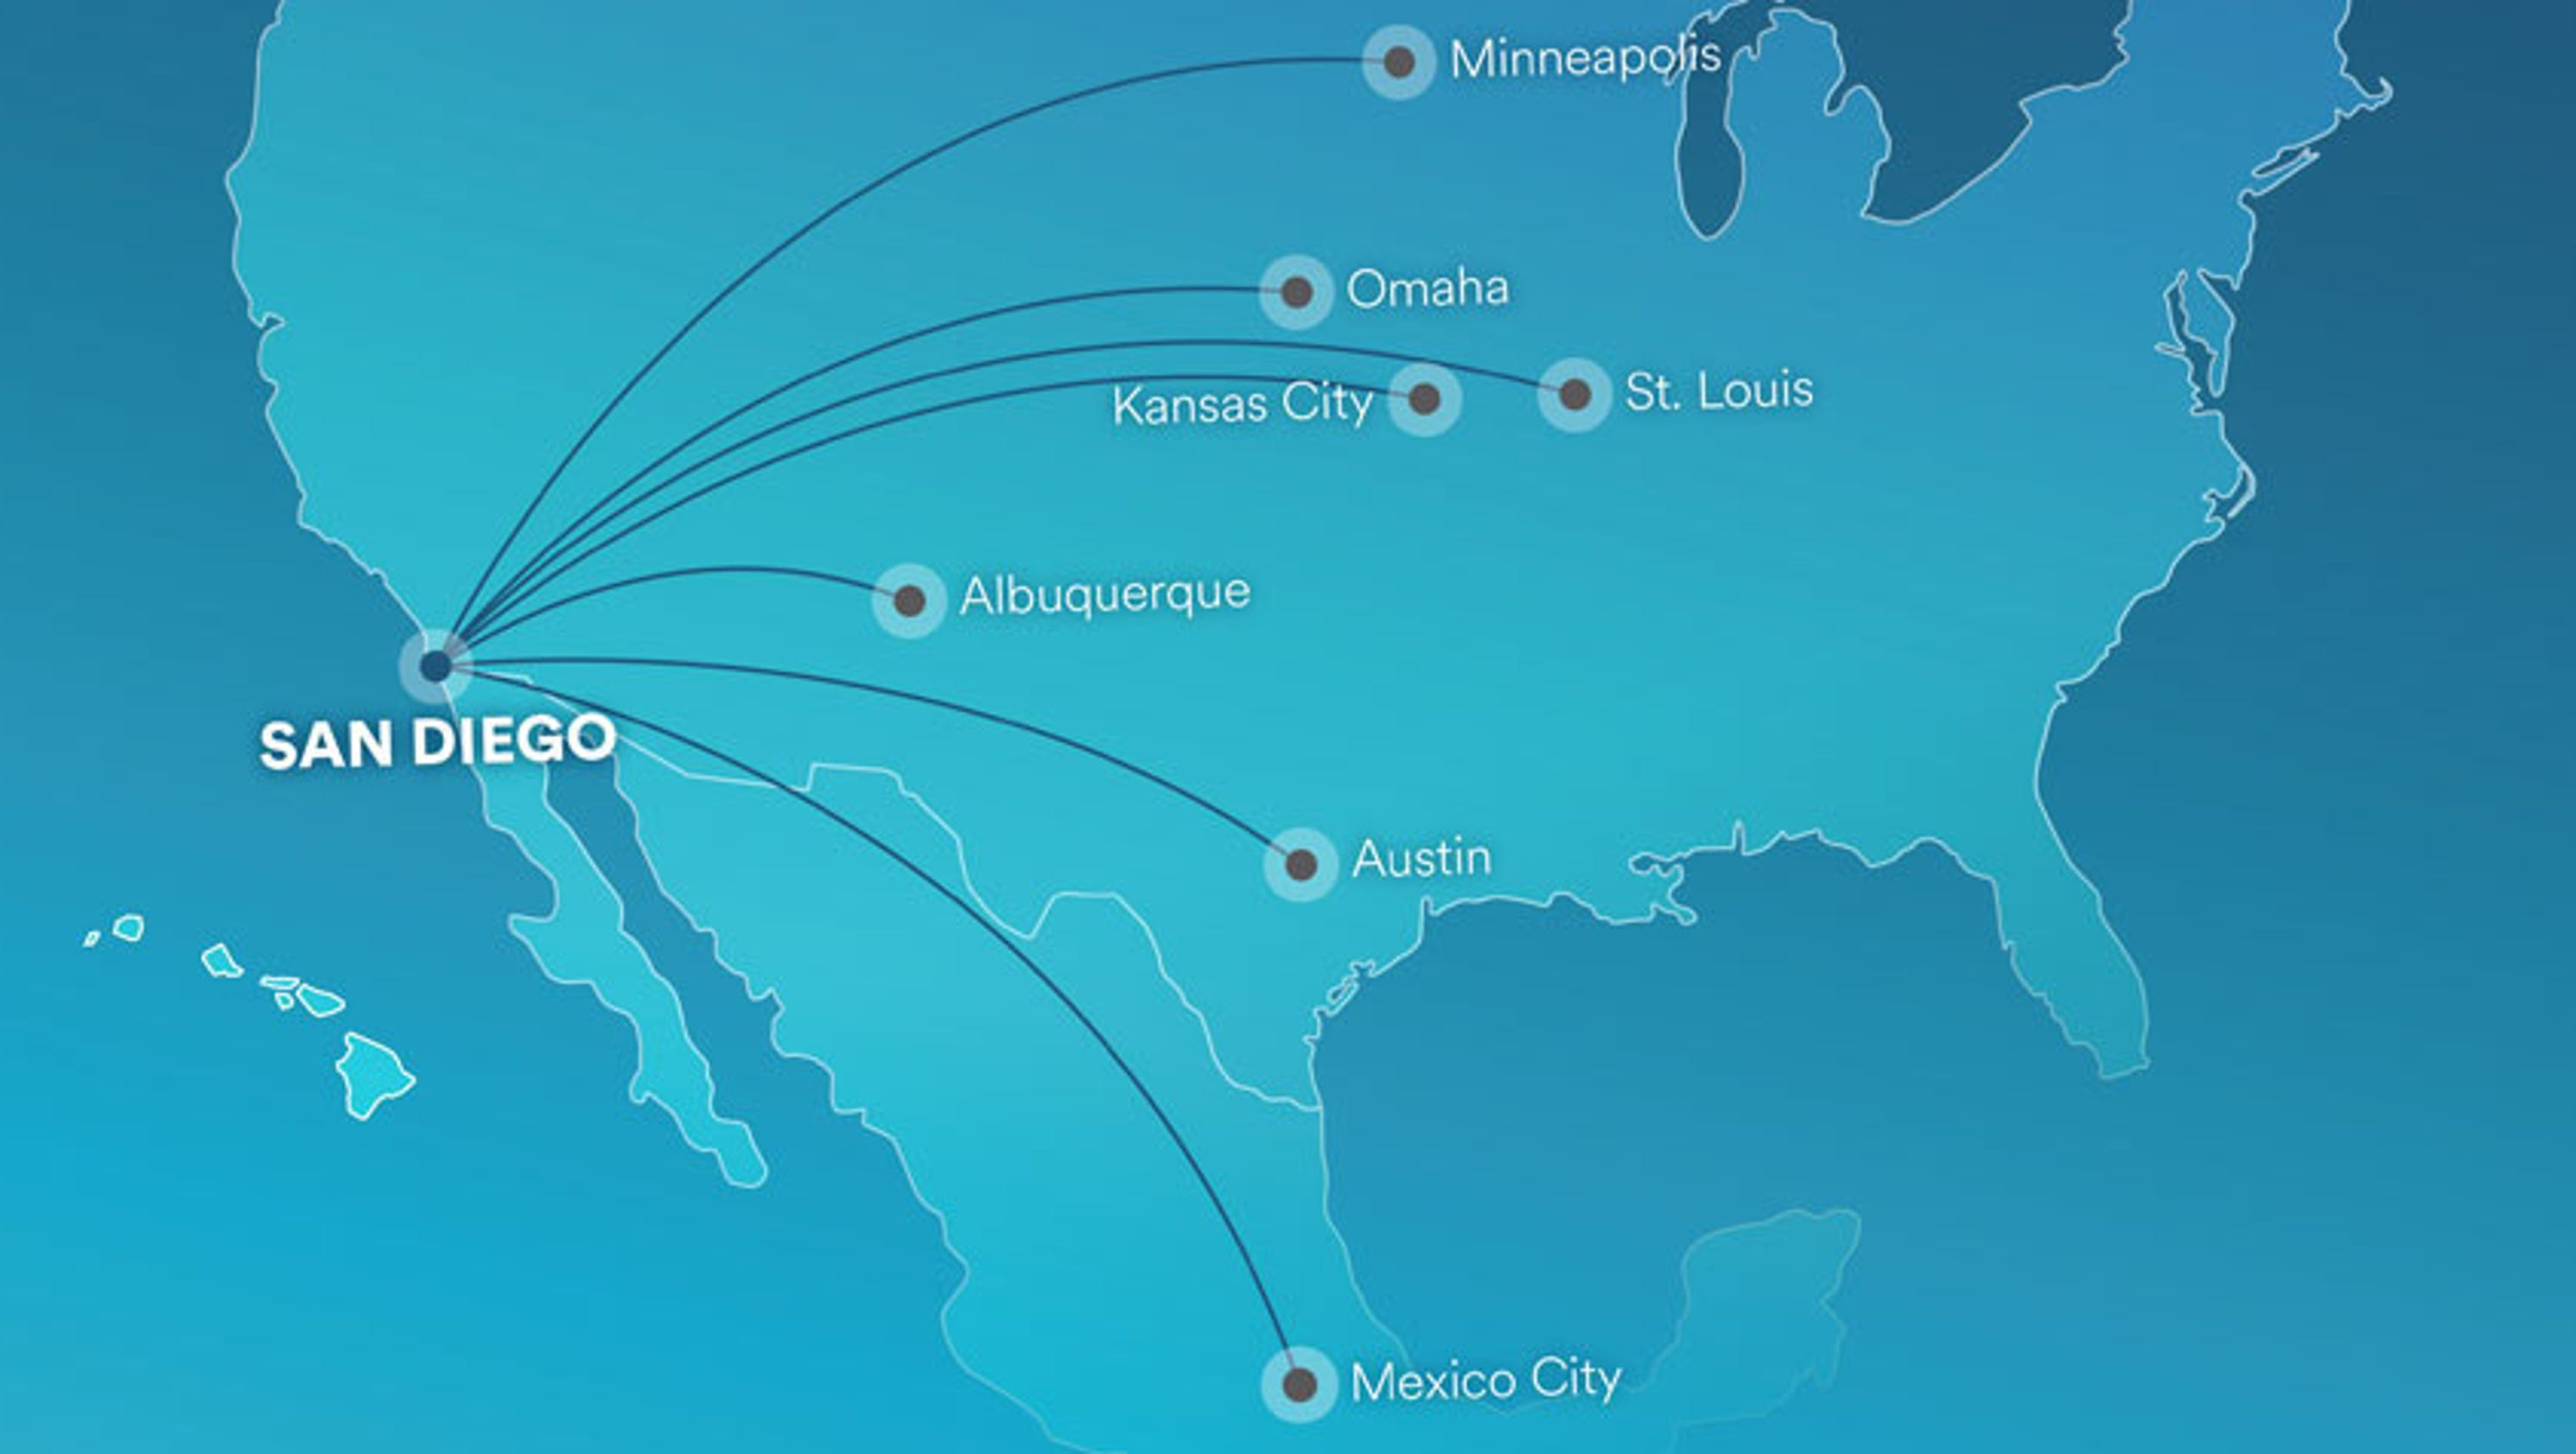 Alaska Airlines Announces Big San Diego Expansion